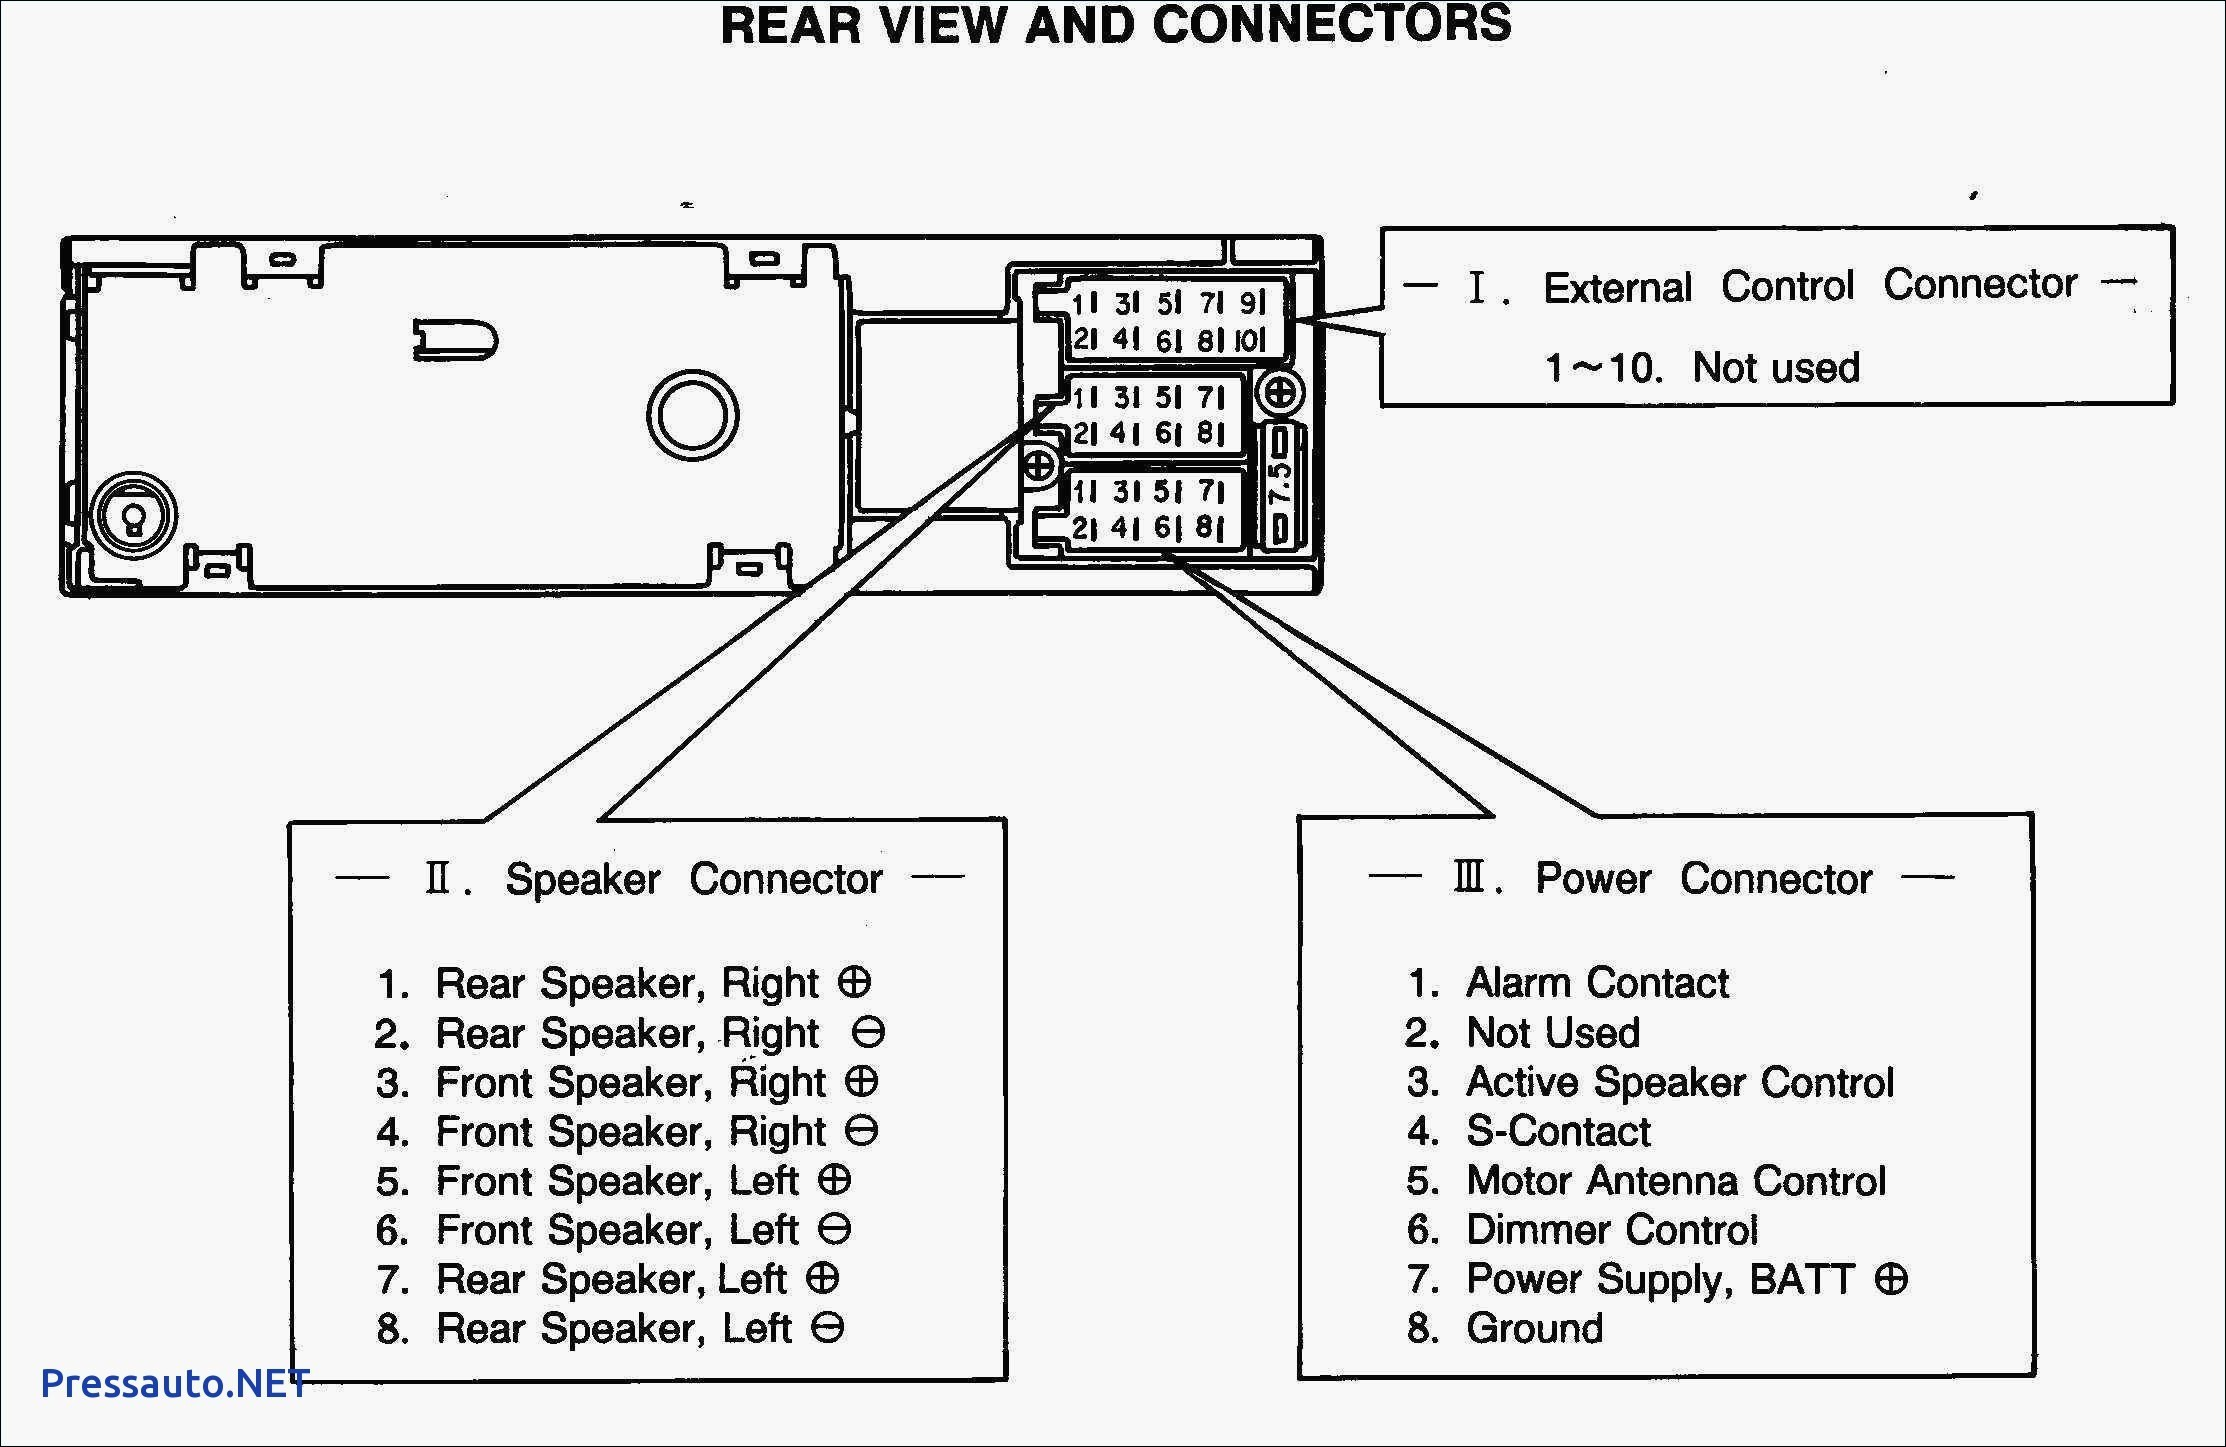 DIAGRAM] Audi A4 Radio Wiring Diagram FULL Version HD Quality Wiring Diagram  - CIRCUTDIAGRAMS.MOOCOM.IT | Audi Symphony Wire Diagram |  | Diagram Database